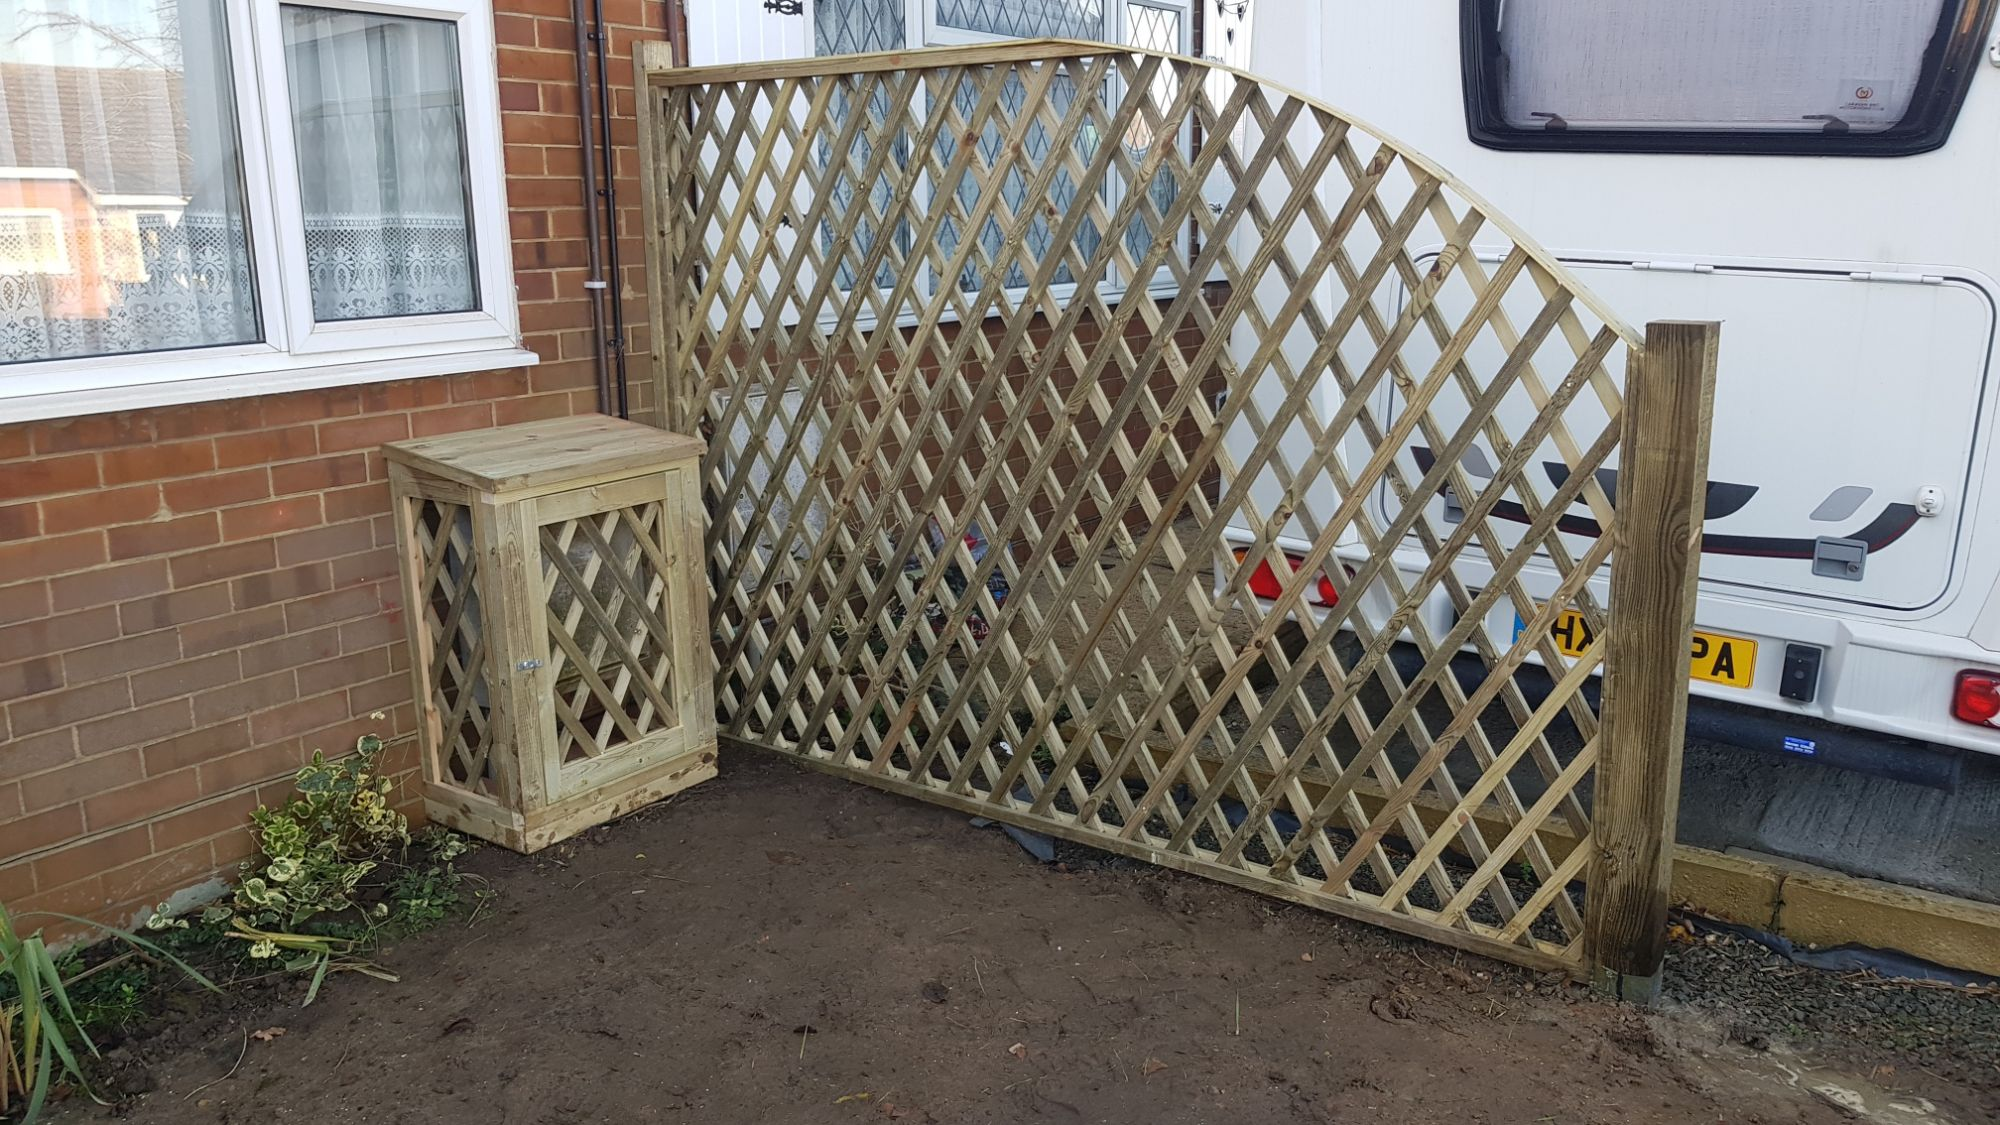 TRELLIS SCREEN AND METER BOX COVER